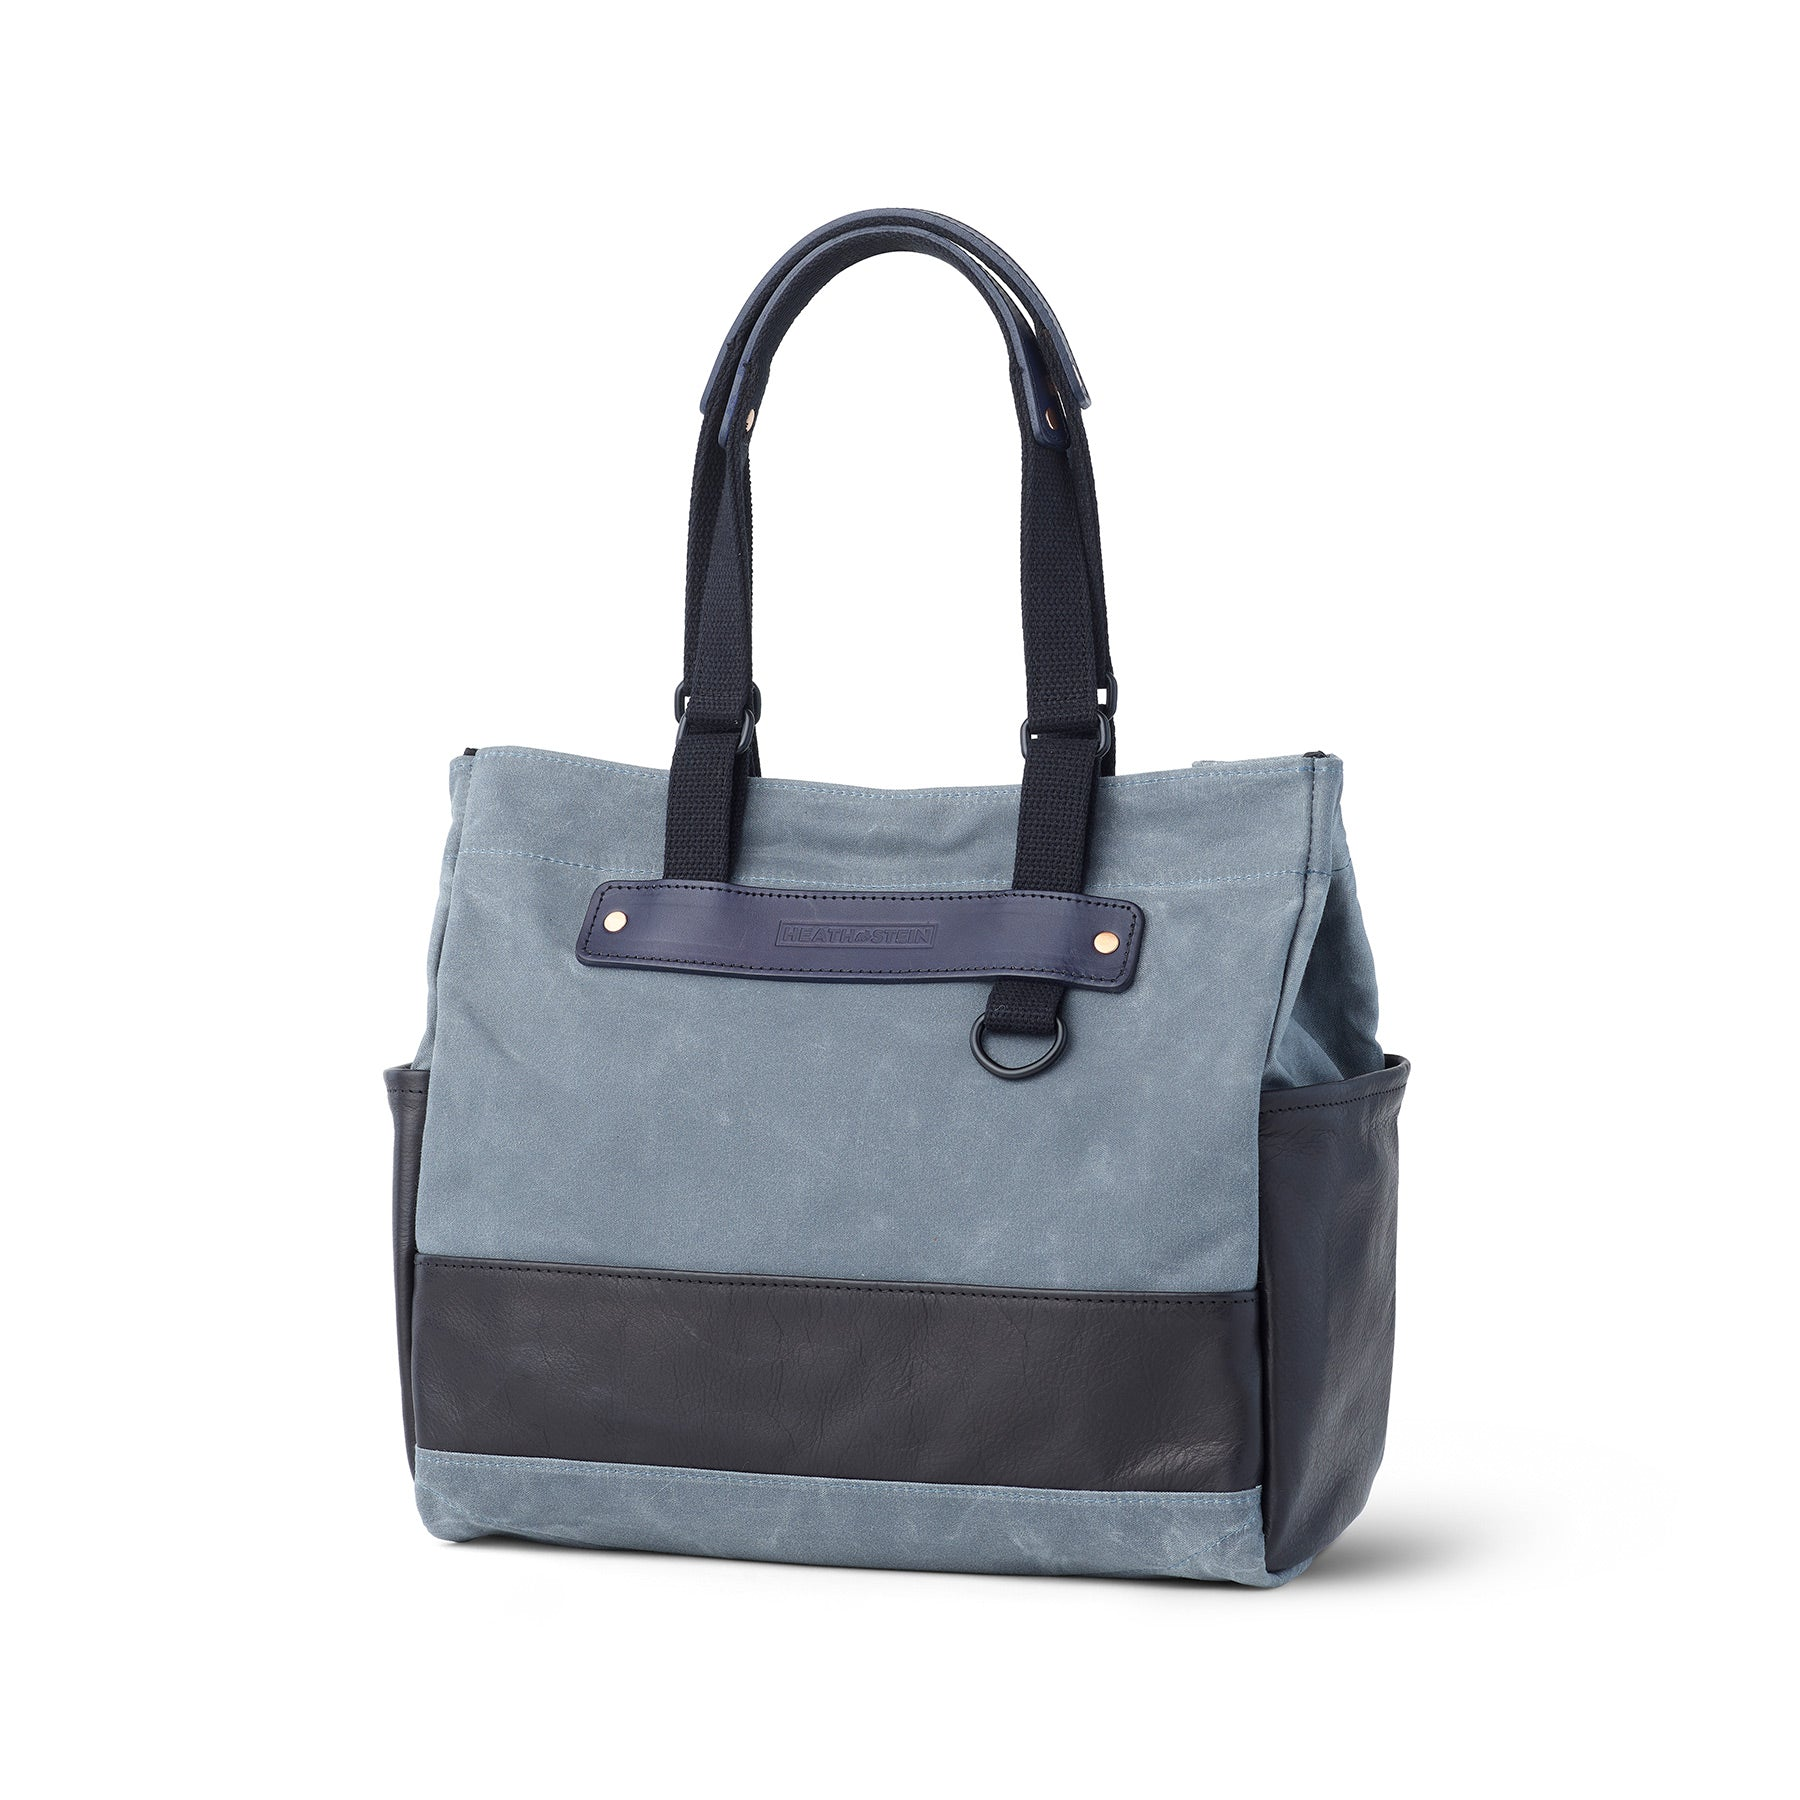 Heath + Stein Union Tote in Midnight Zoom Image 1